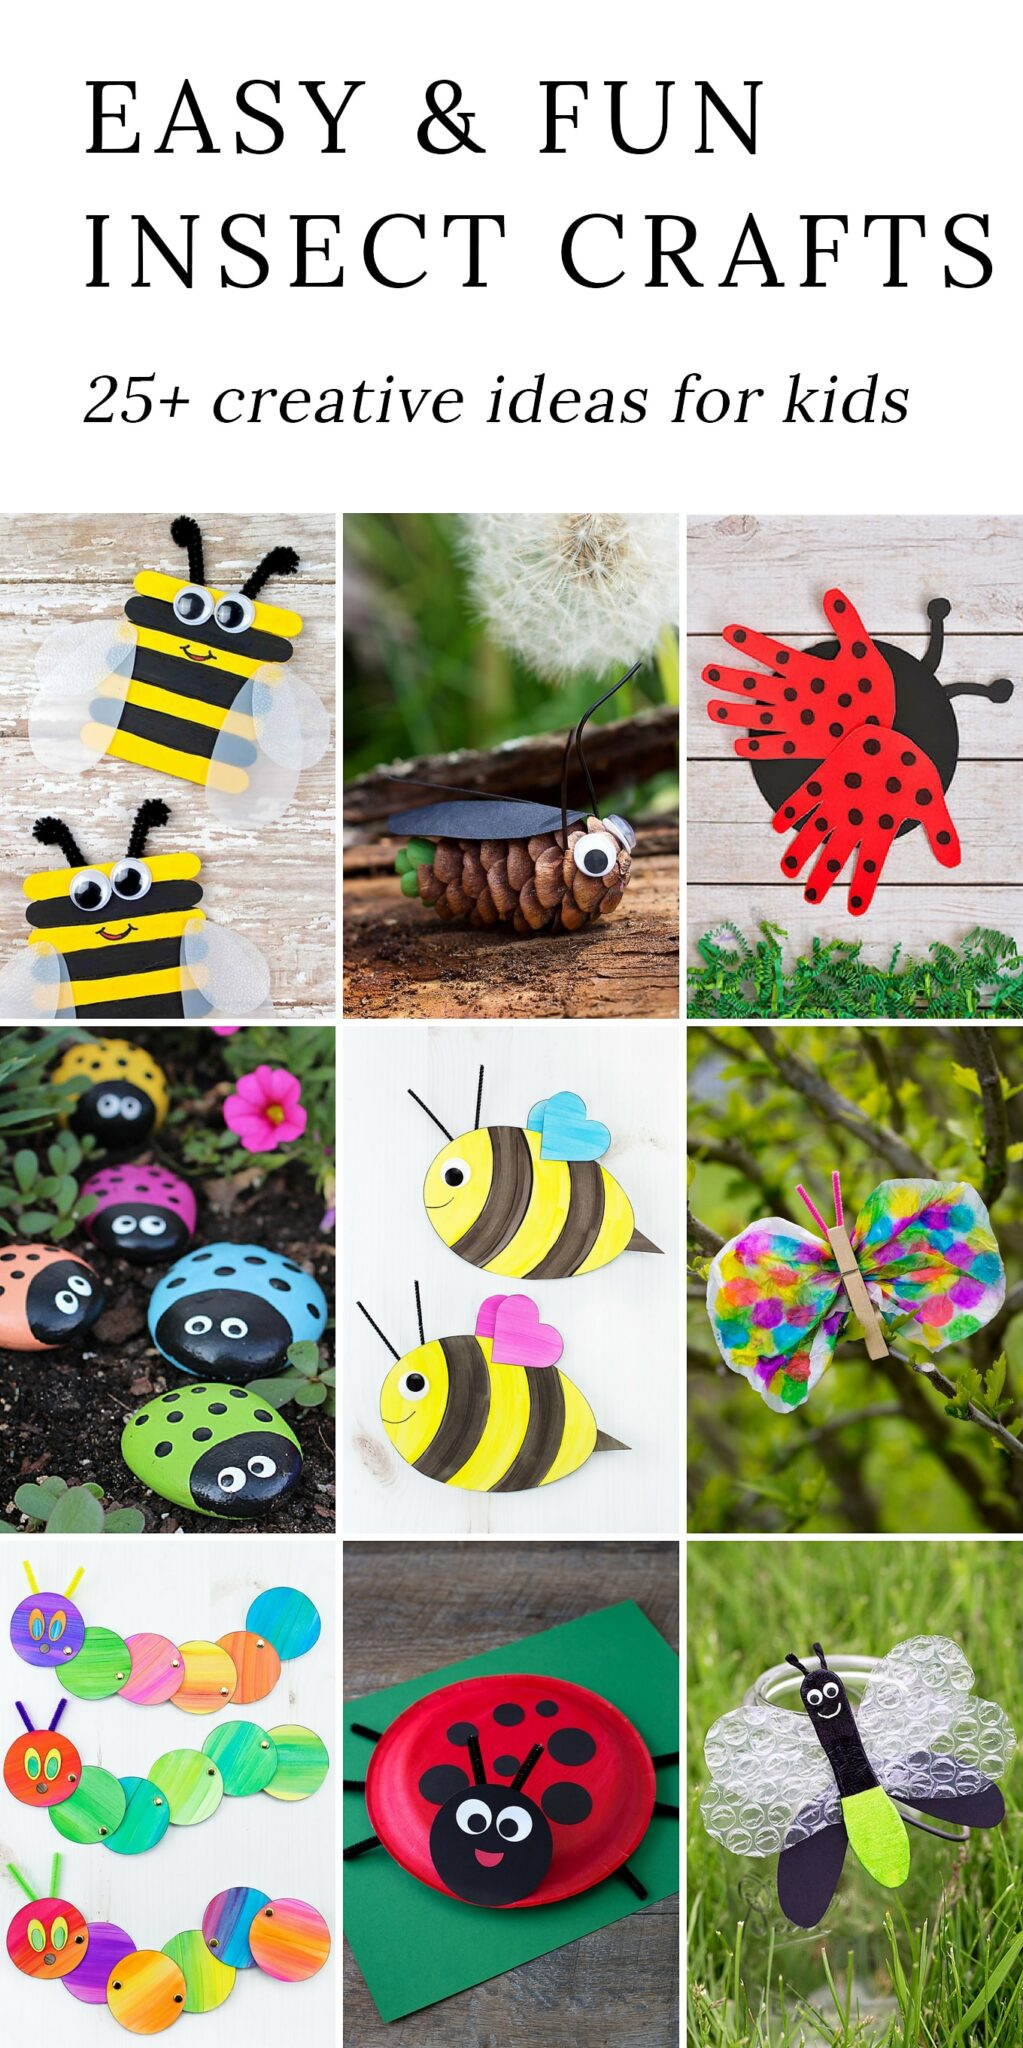 Discover 25+easy and fun insect craftsthat are perfect for summer camp, garden or insect-themed birthday parties, or just as a relaxing, crafty way to bond with your child at home. #insectcrafts #bugcrafts #summercrafts via @firefliesandmudpies